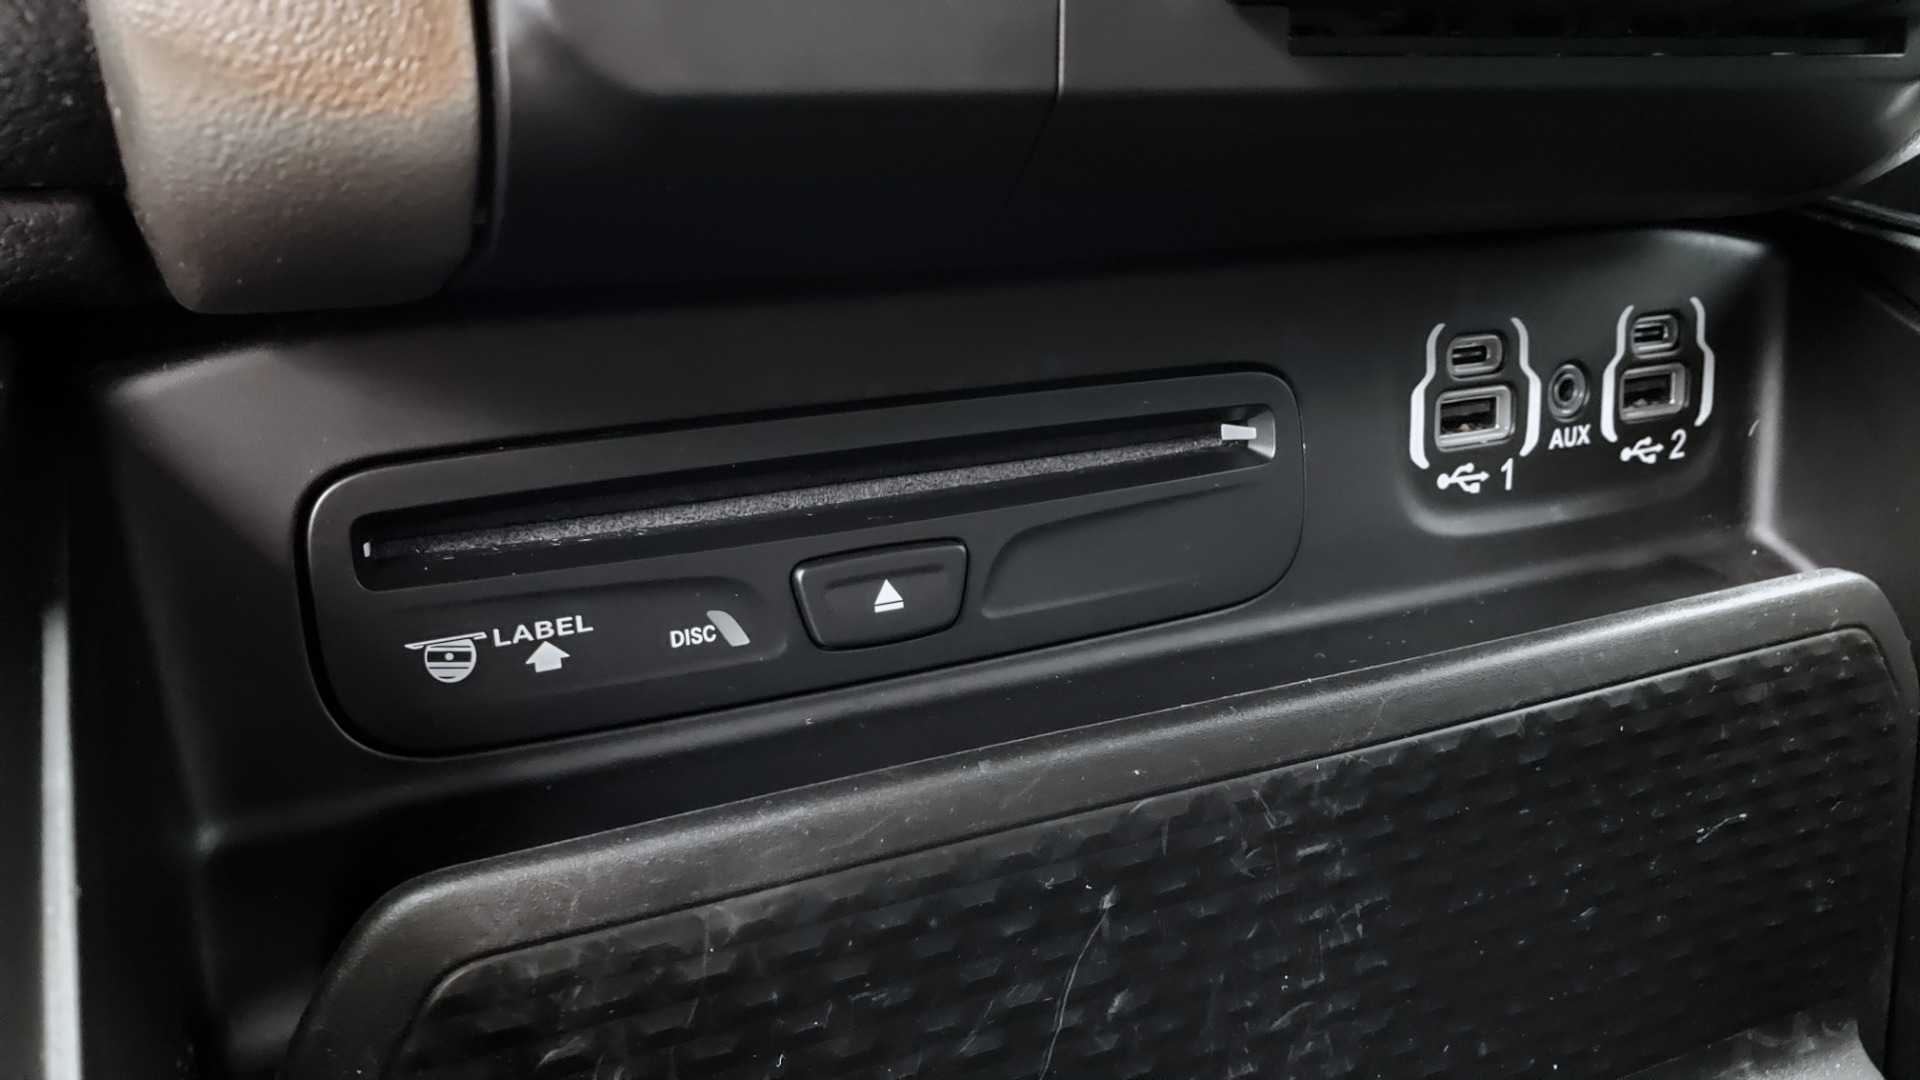 Used 2019 Ram 1500 LARAMIE SPORT / 2WD / 5.7L HEMI / NAV / BLIND SPOT / HTD STS / REARVIEW for sale Sold at Formula Imports in Charlotte NC 28227 61